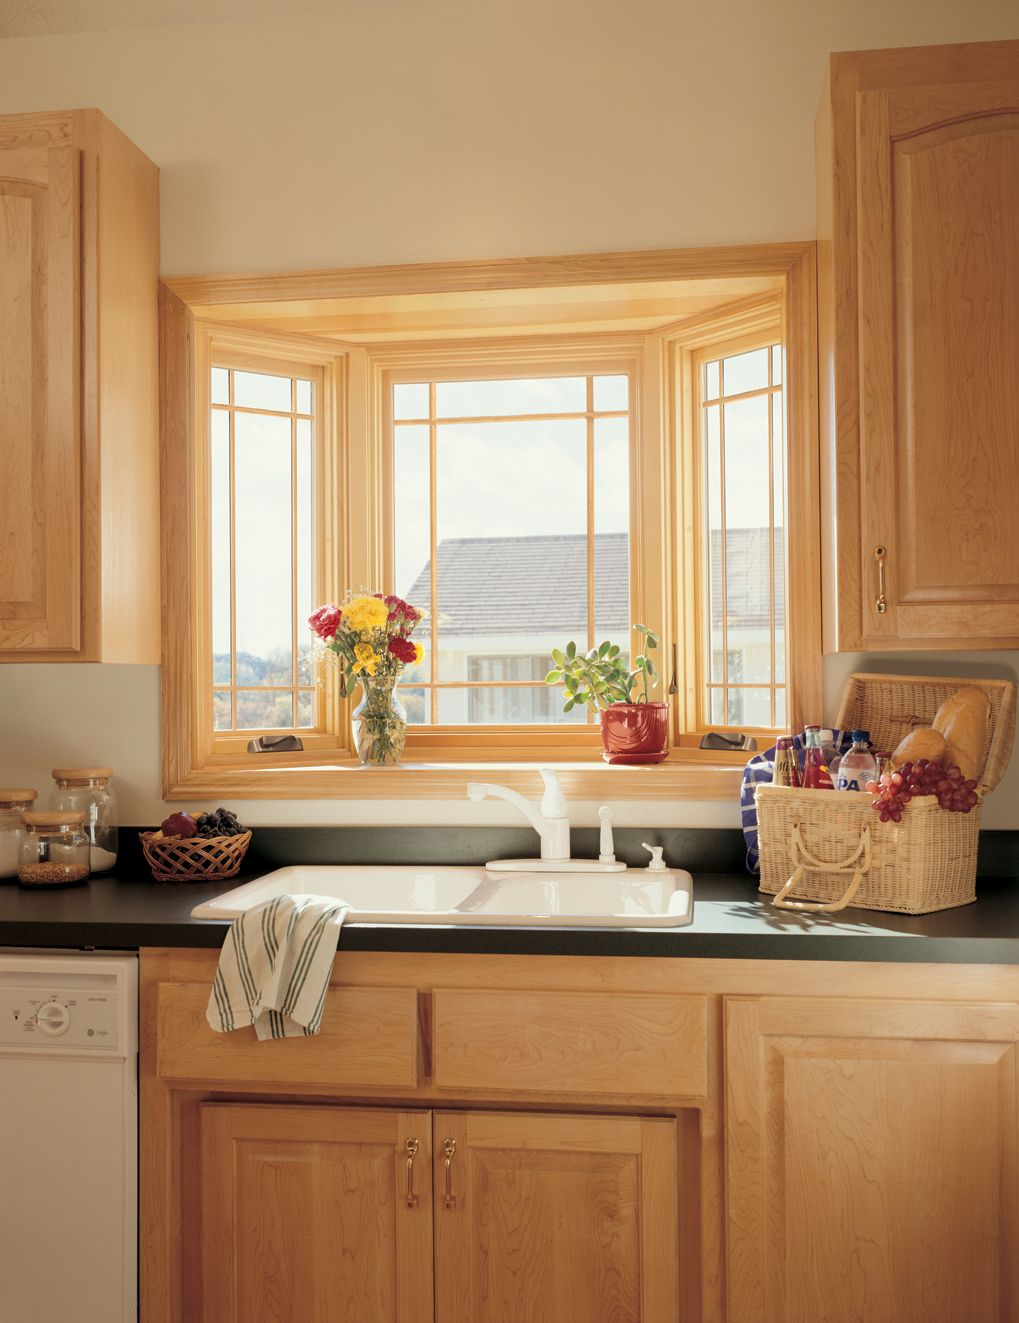 Delightful Wooden Cabinet With Black Countertop also Simple Window Design